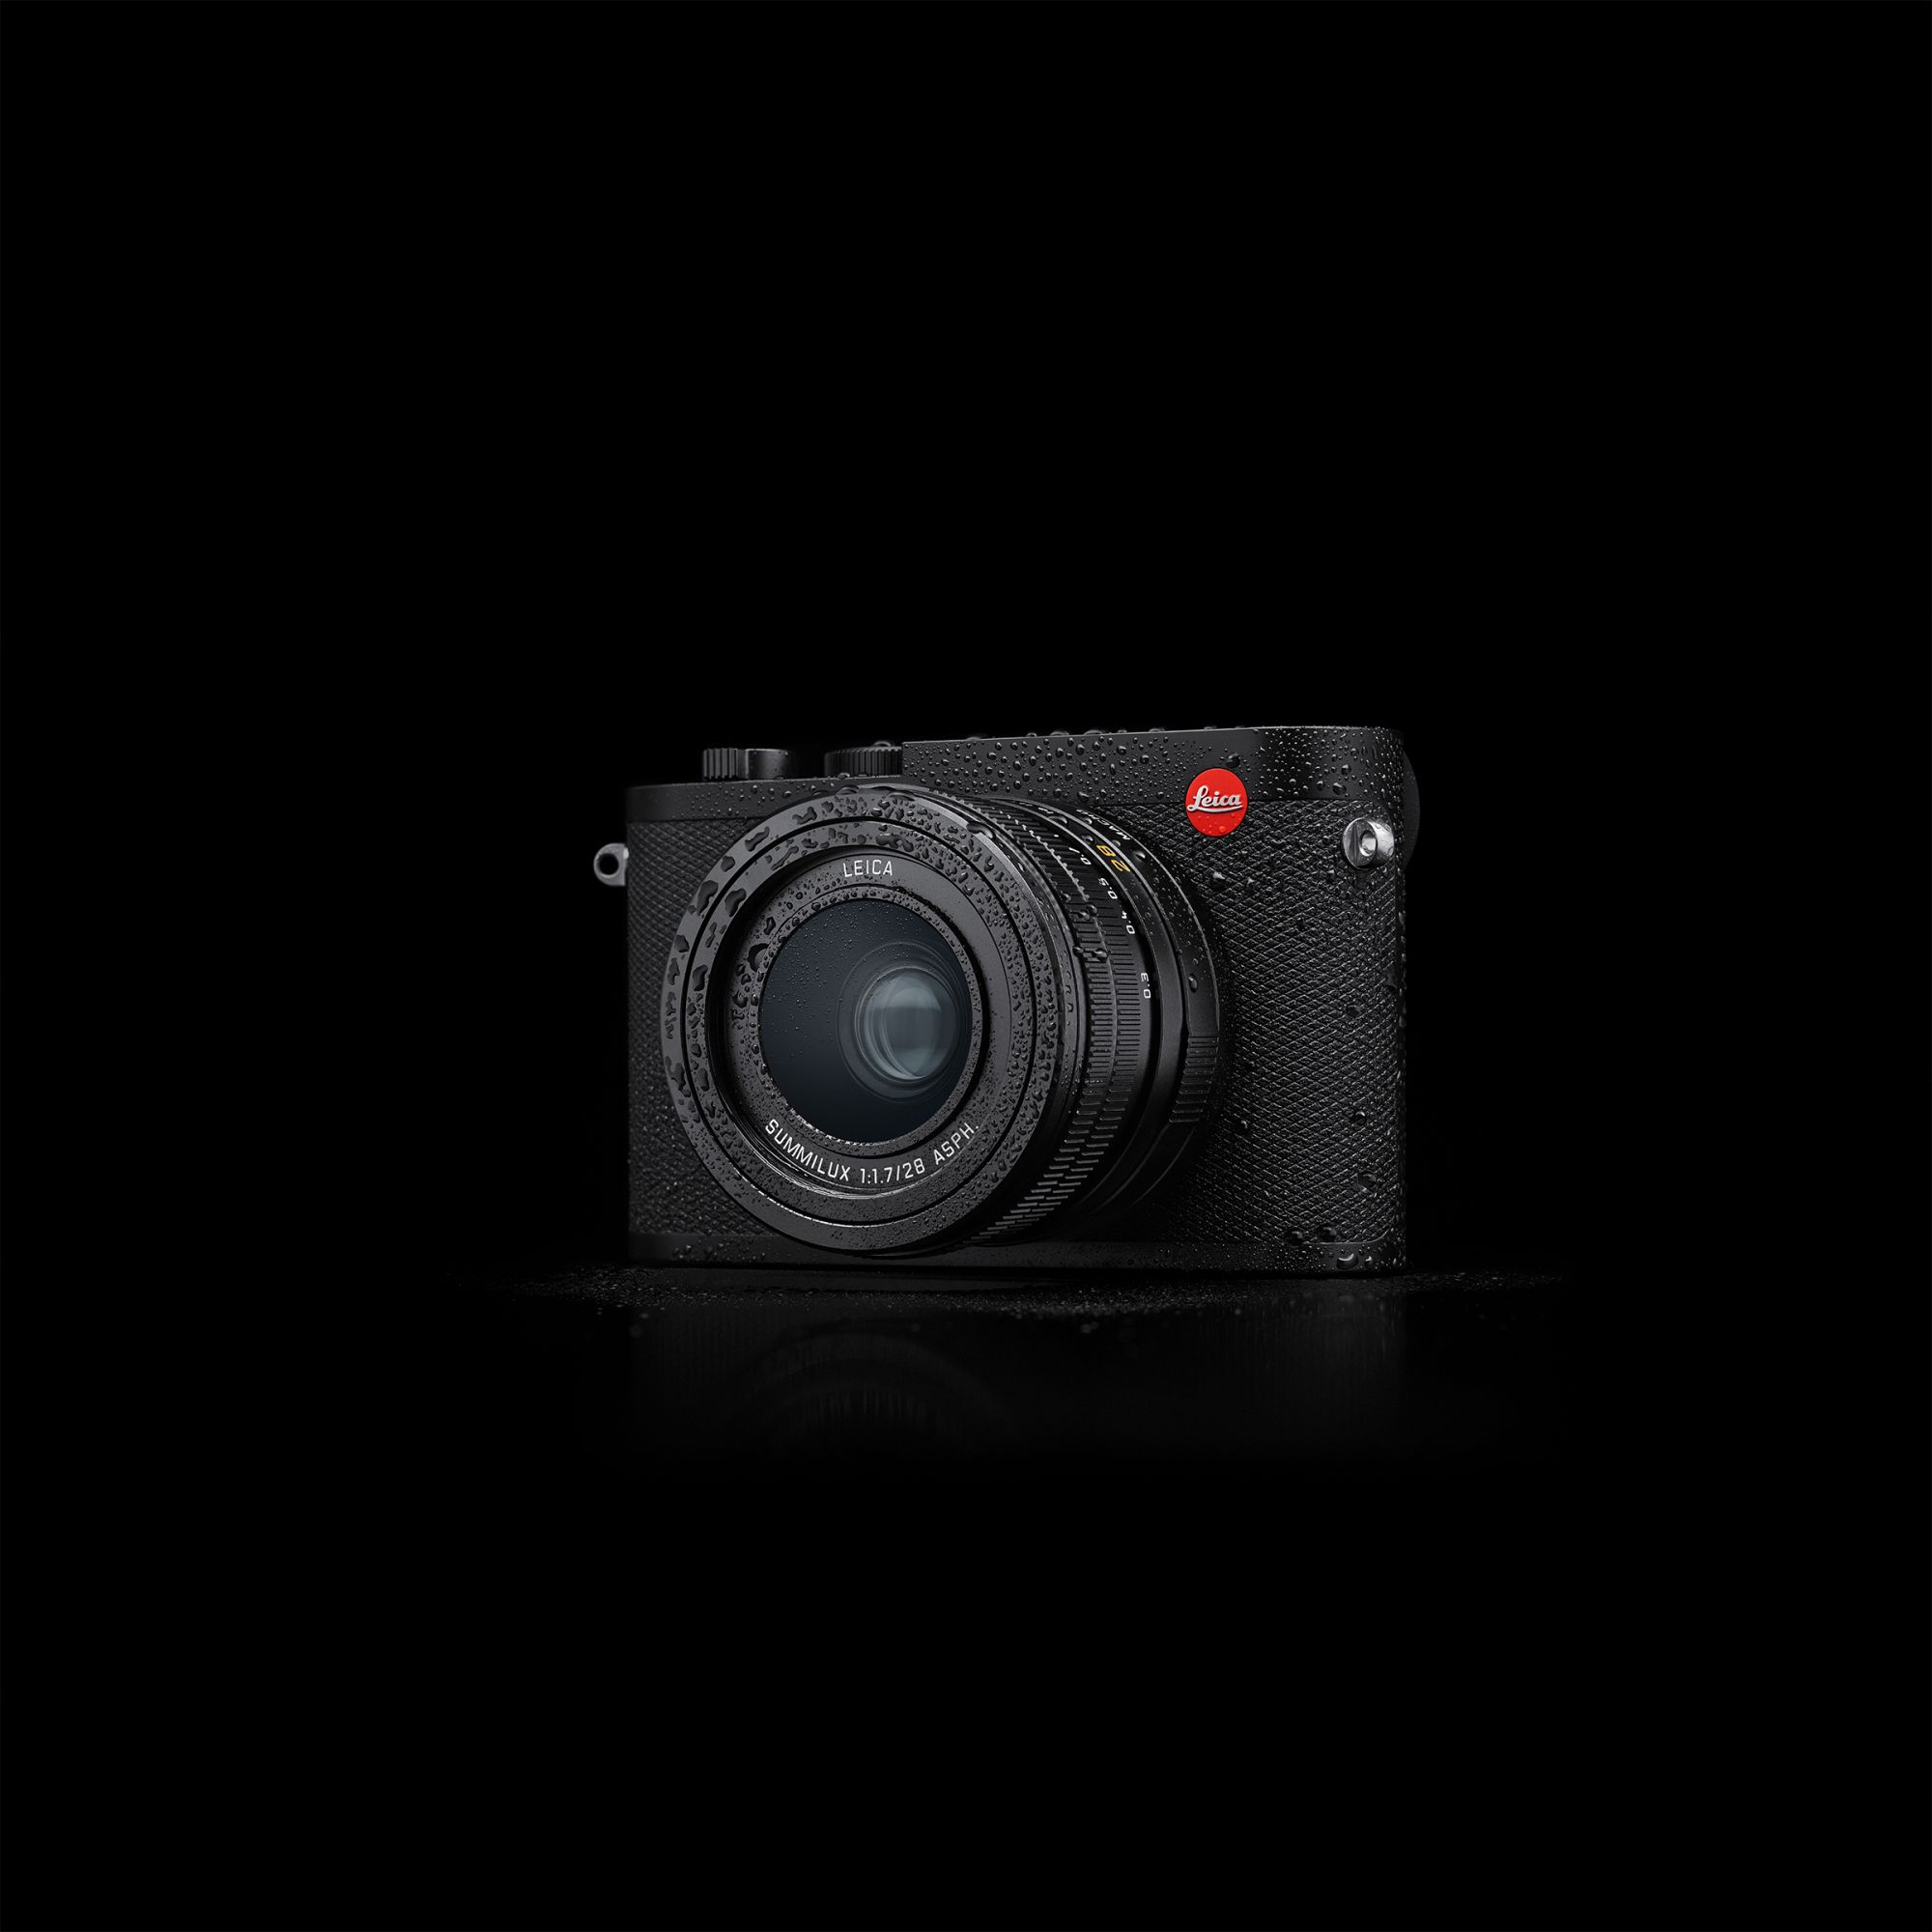 Meet The Compact Camera That Does It All